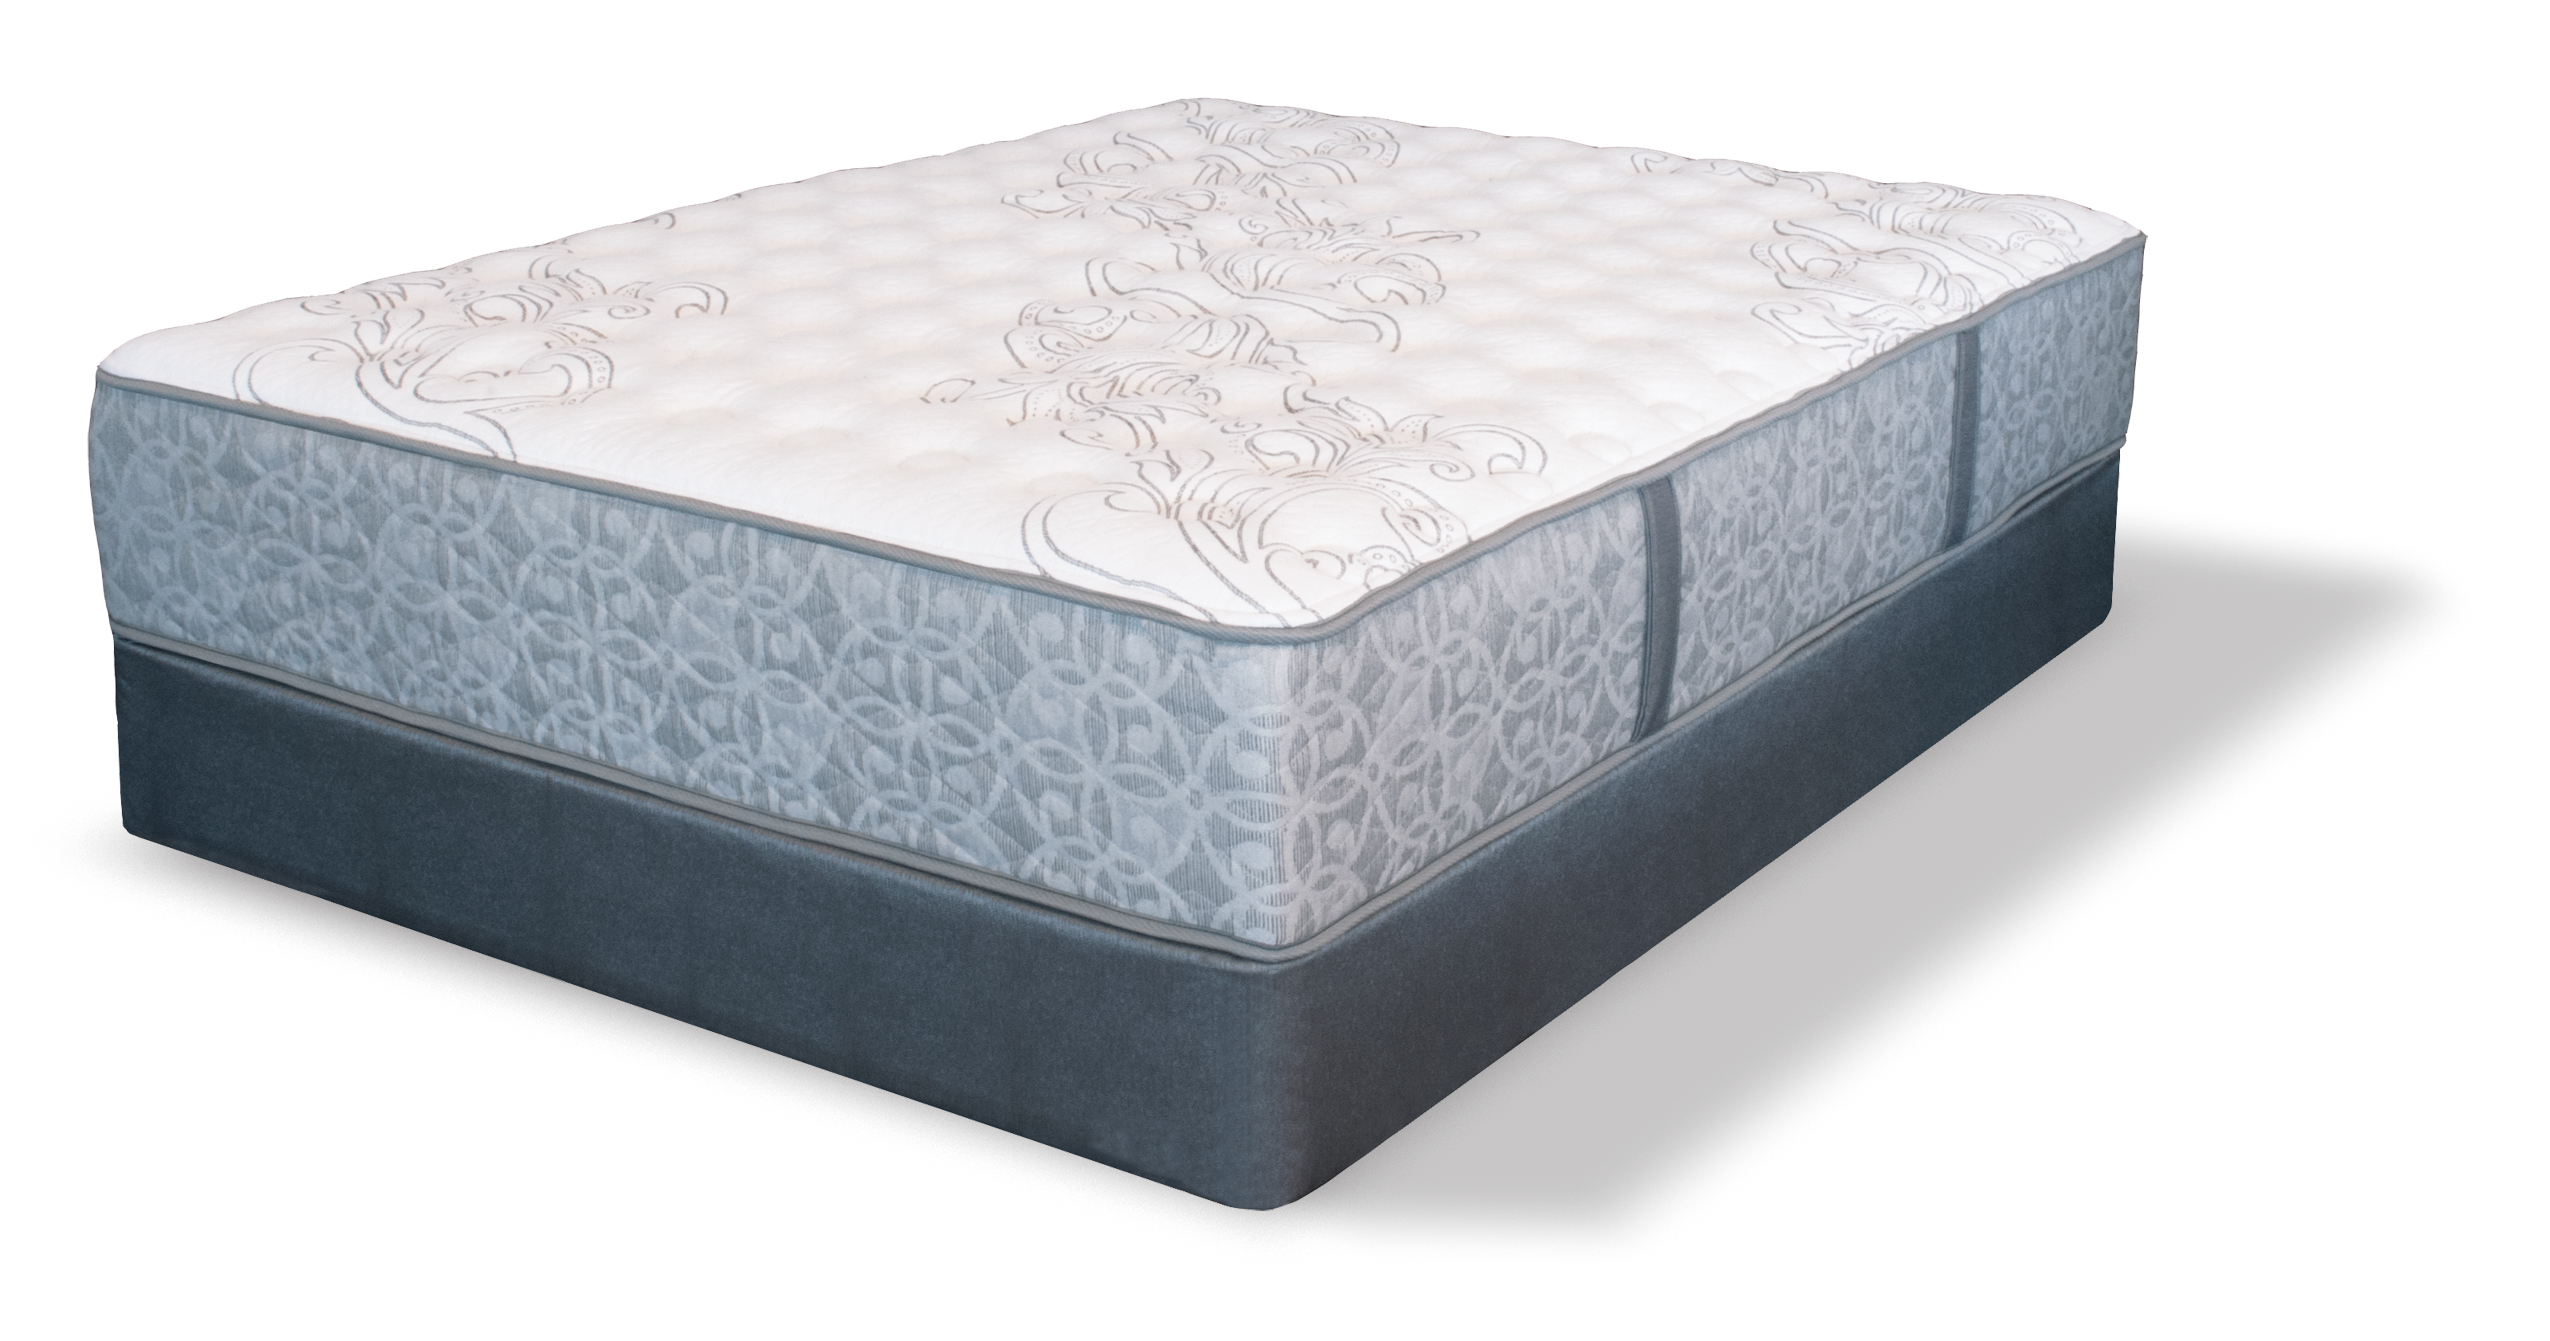 Firm mattress for sale select luxury medium firm 14inch queensize gel memory foam mattress Queen mattress sale